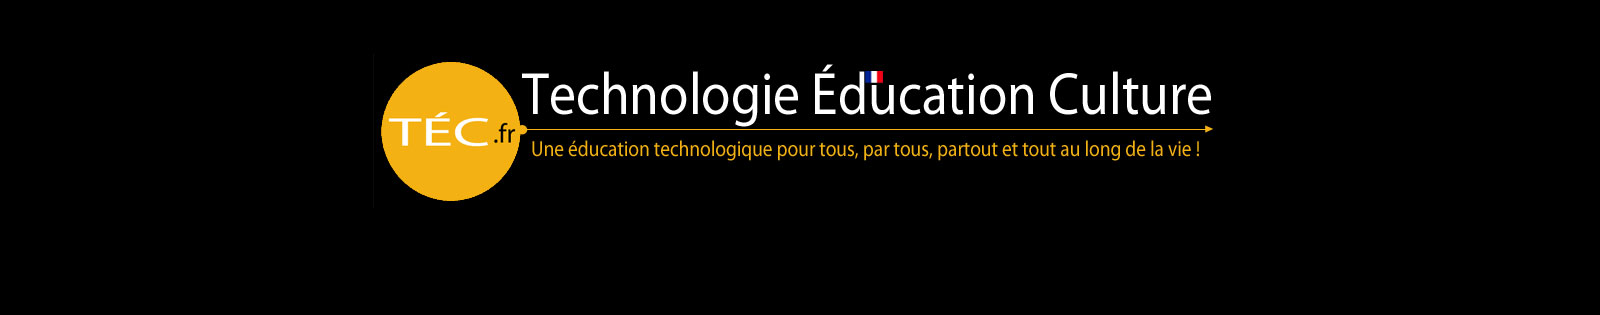 Soutenir l'action de Technologie Éducation Culture - Technologie Éducation Culture